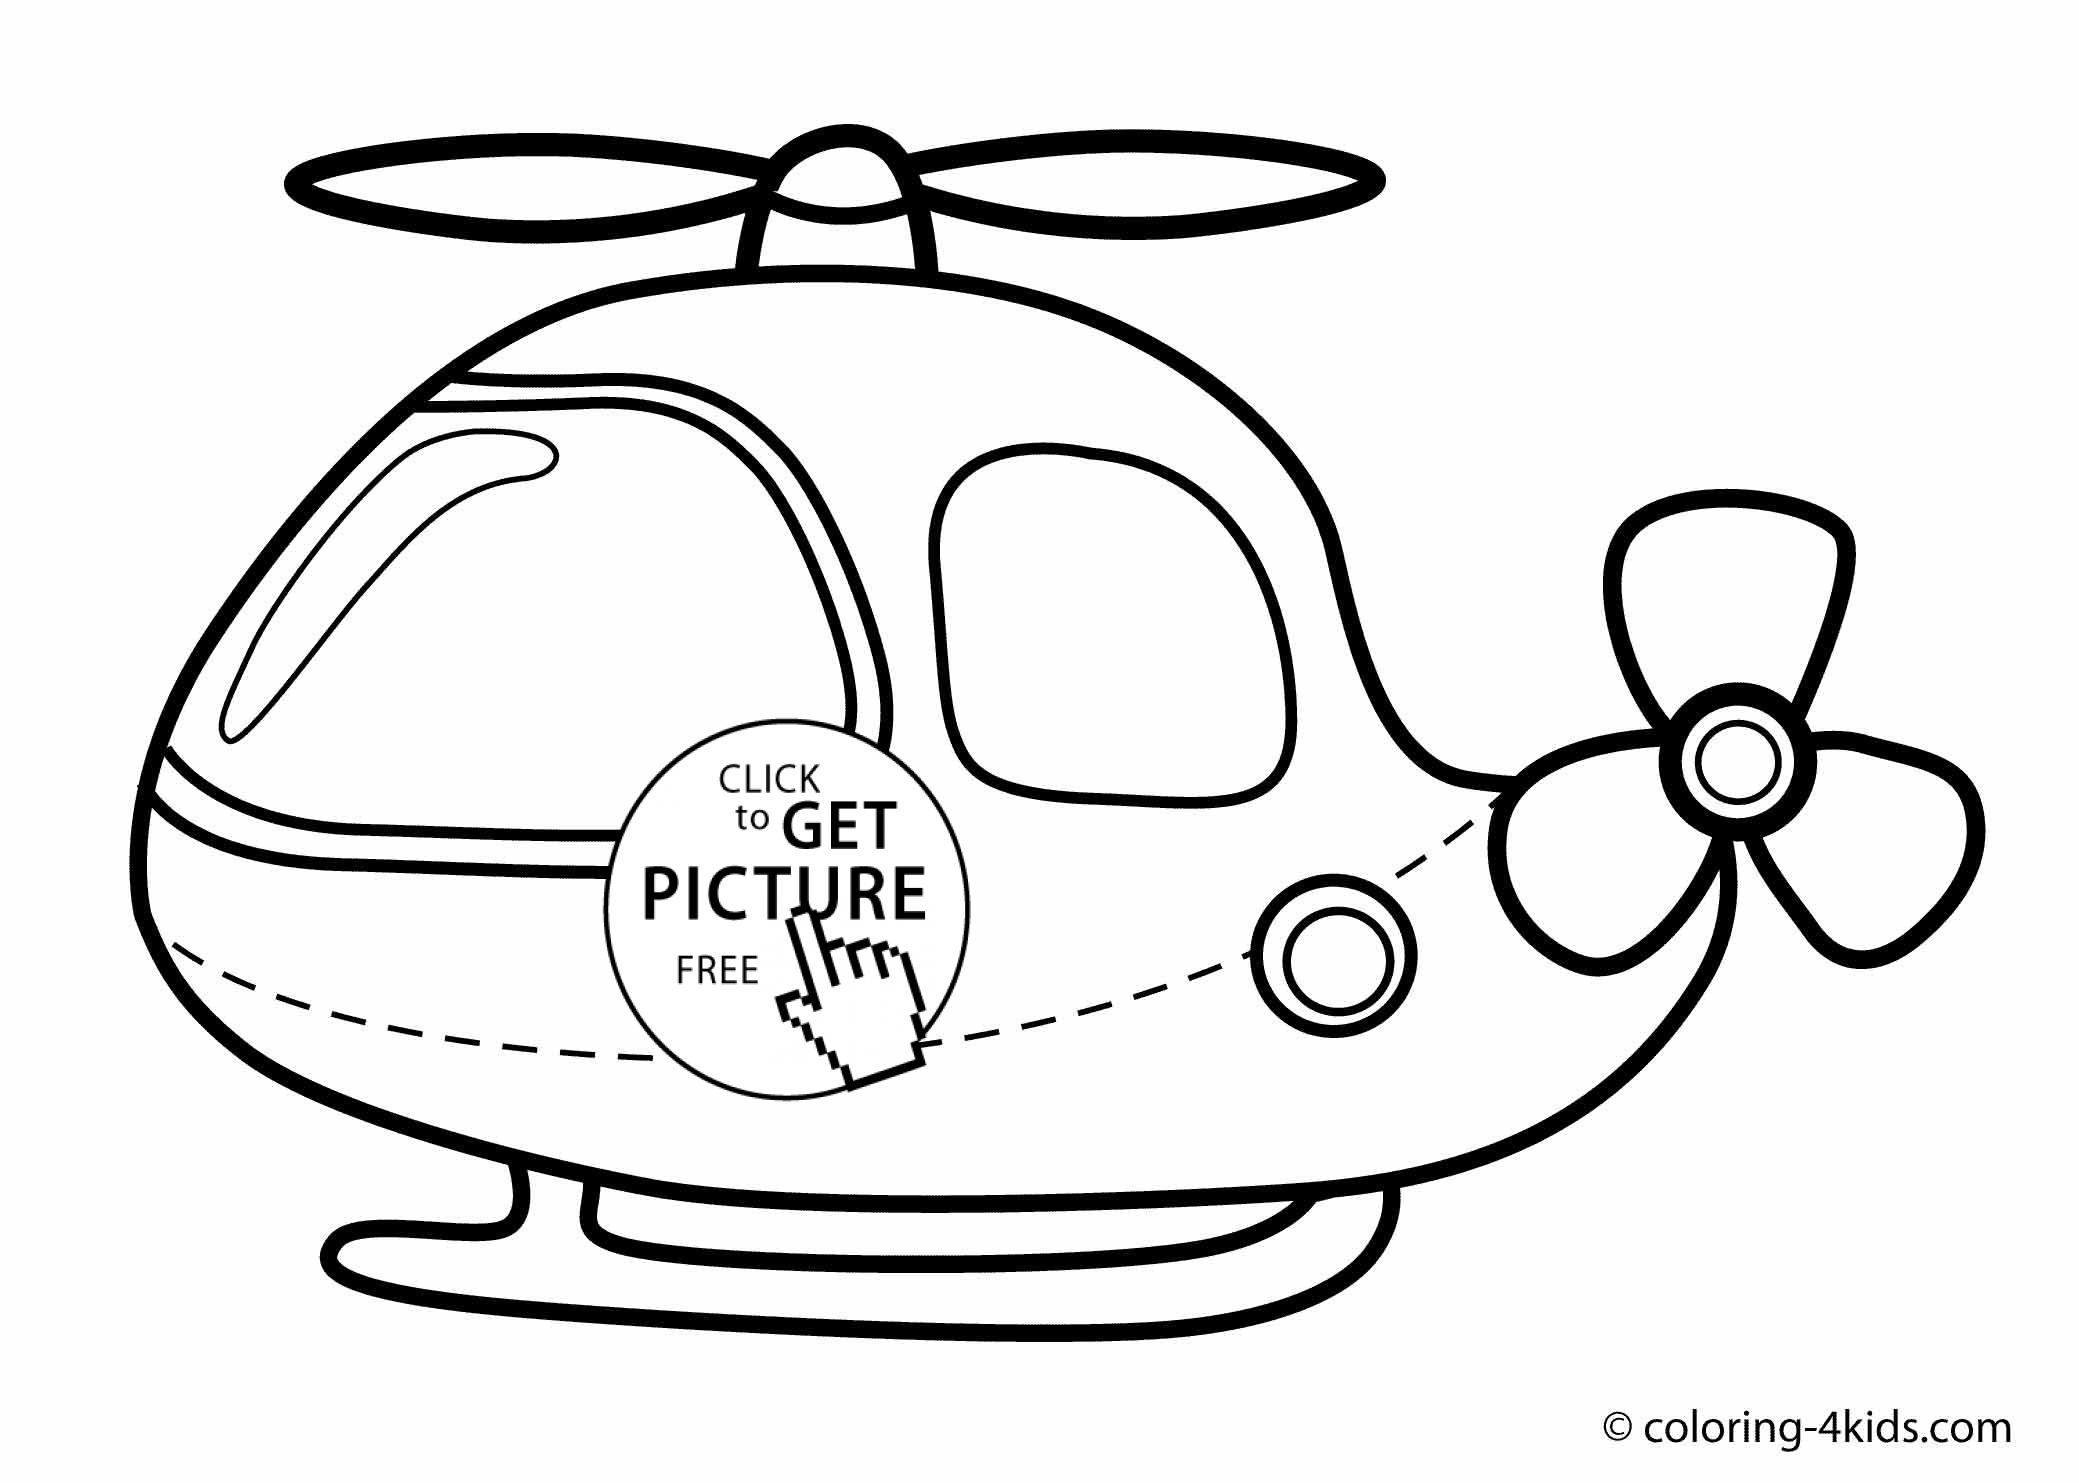 Book coloring - Helicopter Coloring Page For Kids Printable Free Helicopter Coloring Books